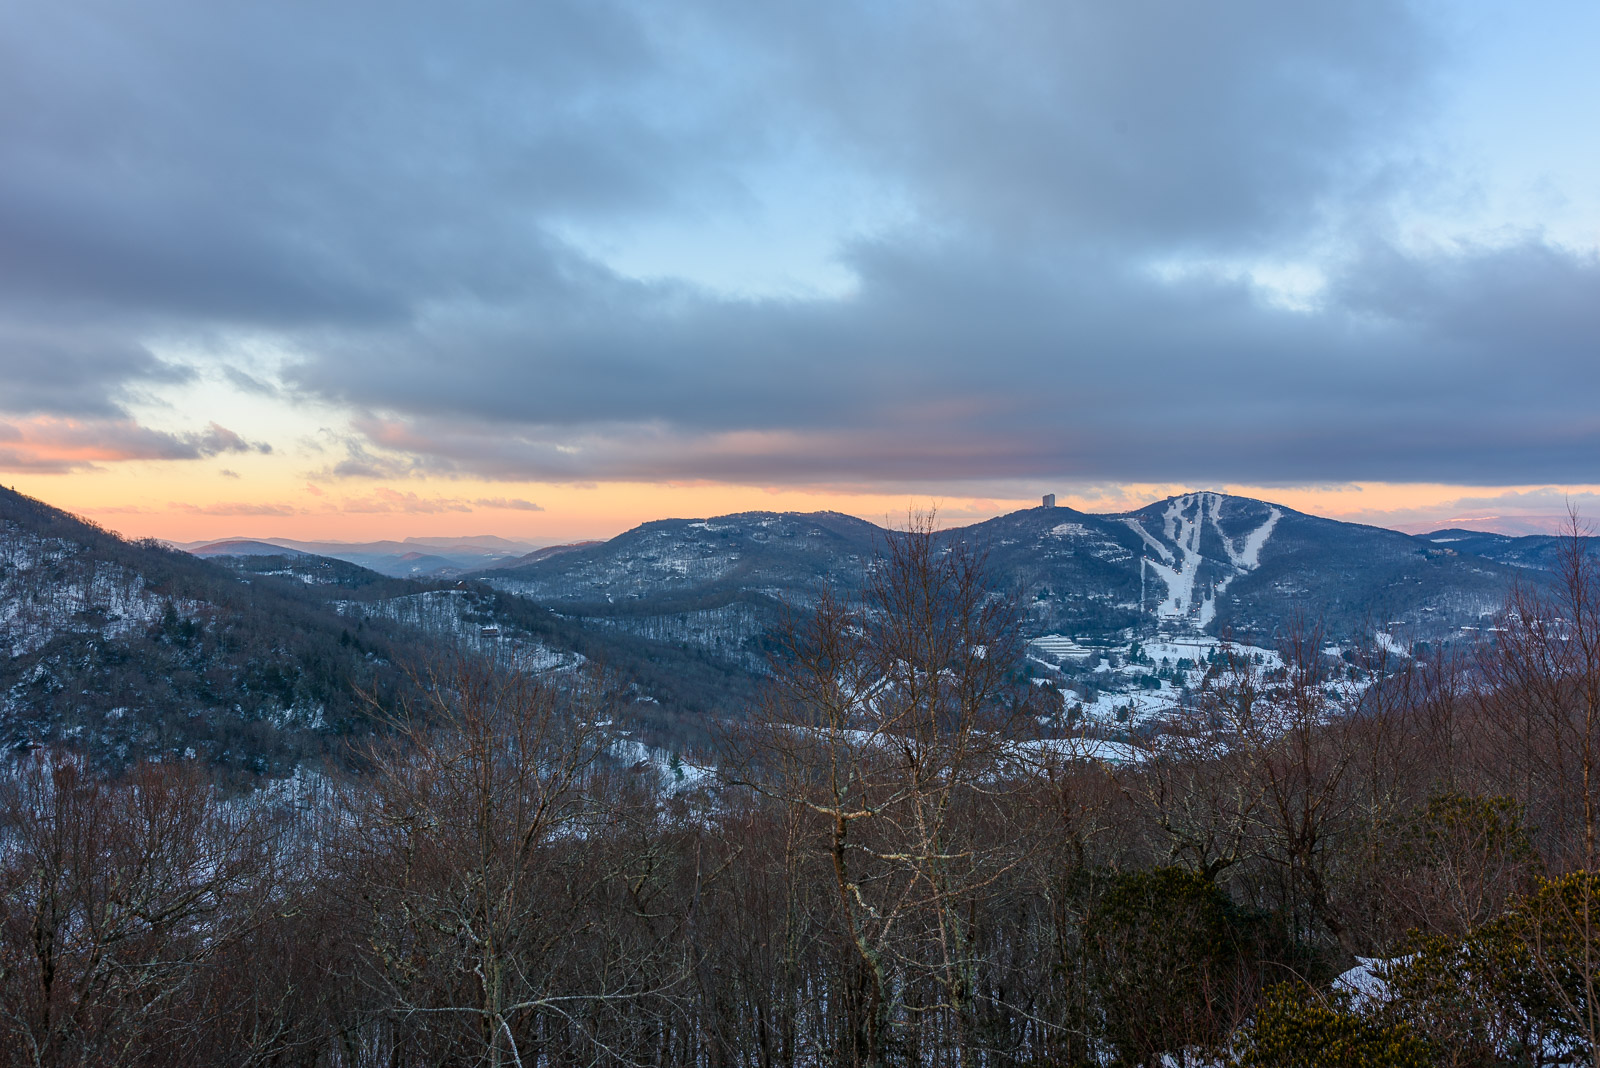 Views of the Slopes of Sugar Mountain from the Deck